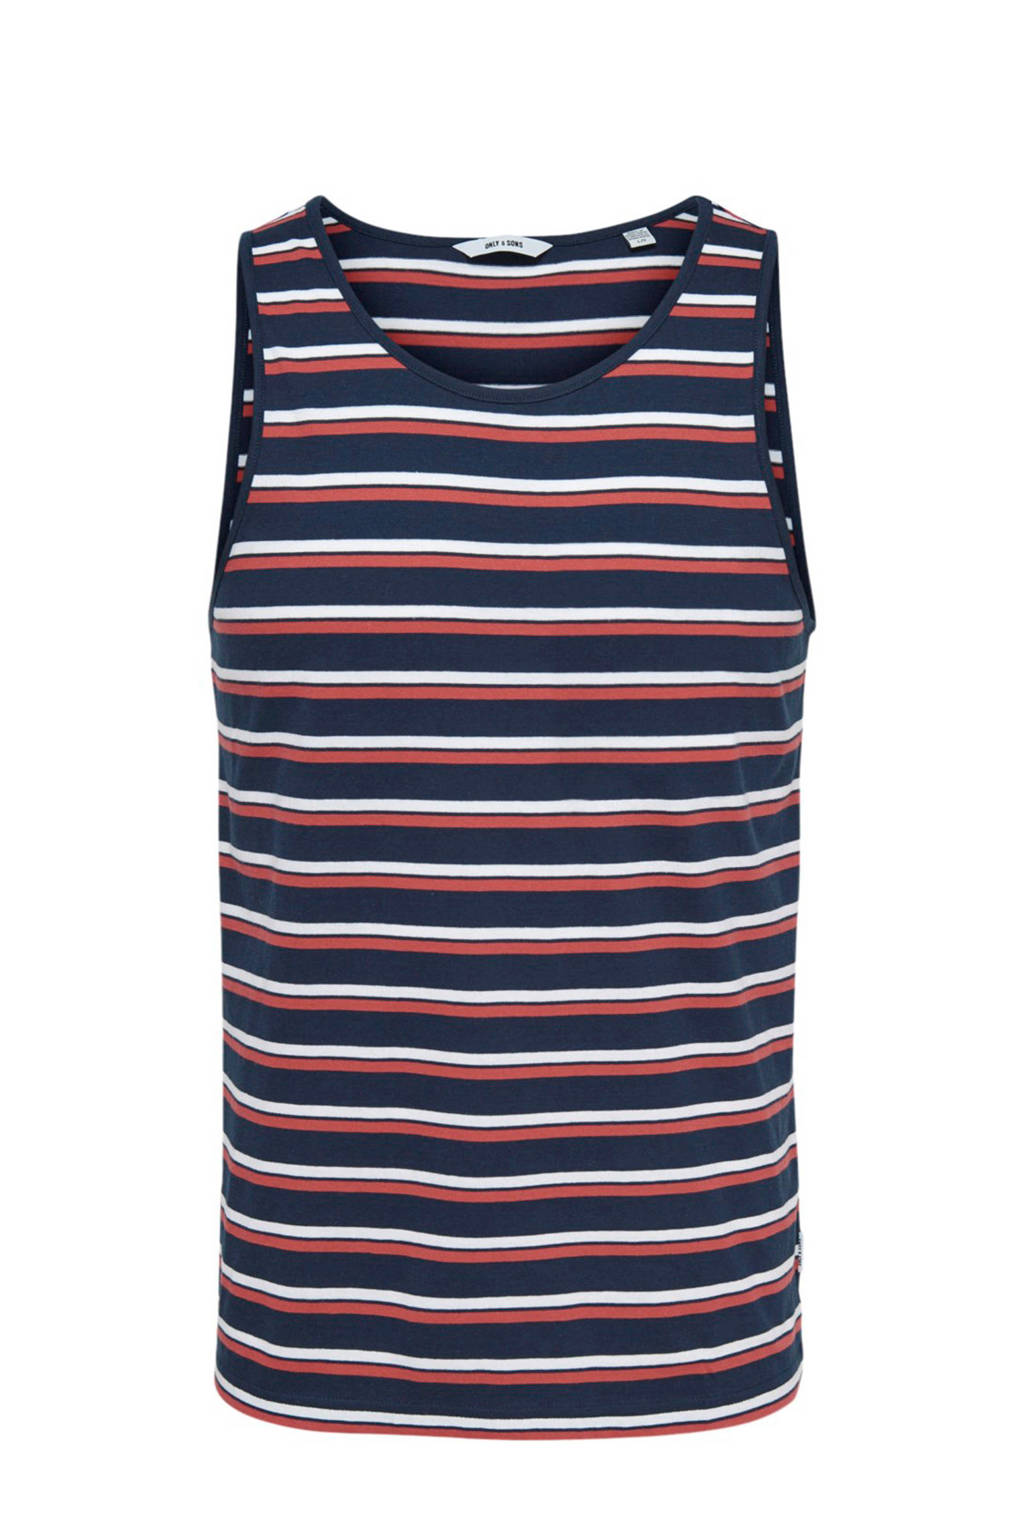 Only & Sons singlet, Donkerblauw/rood/wit